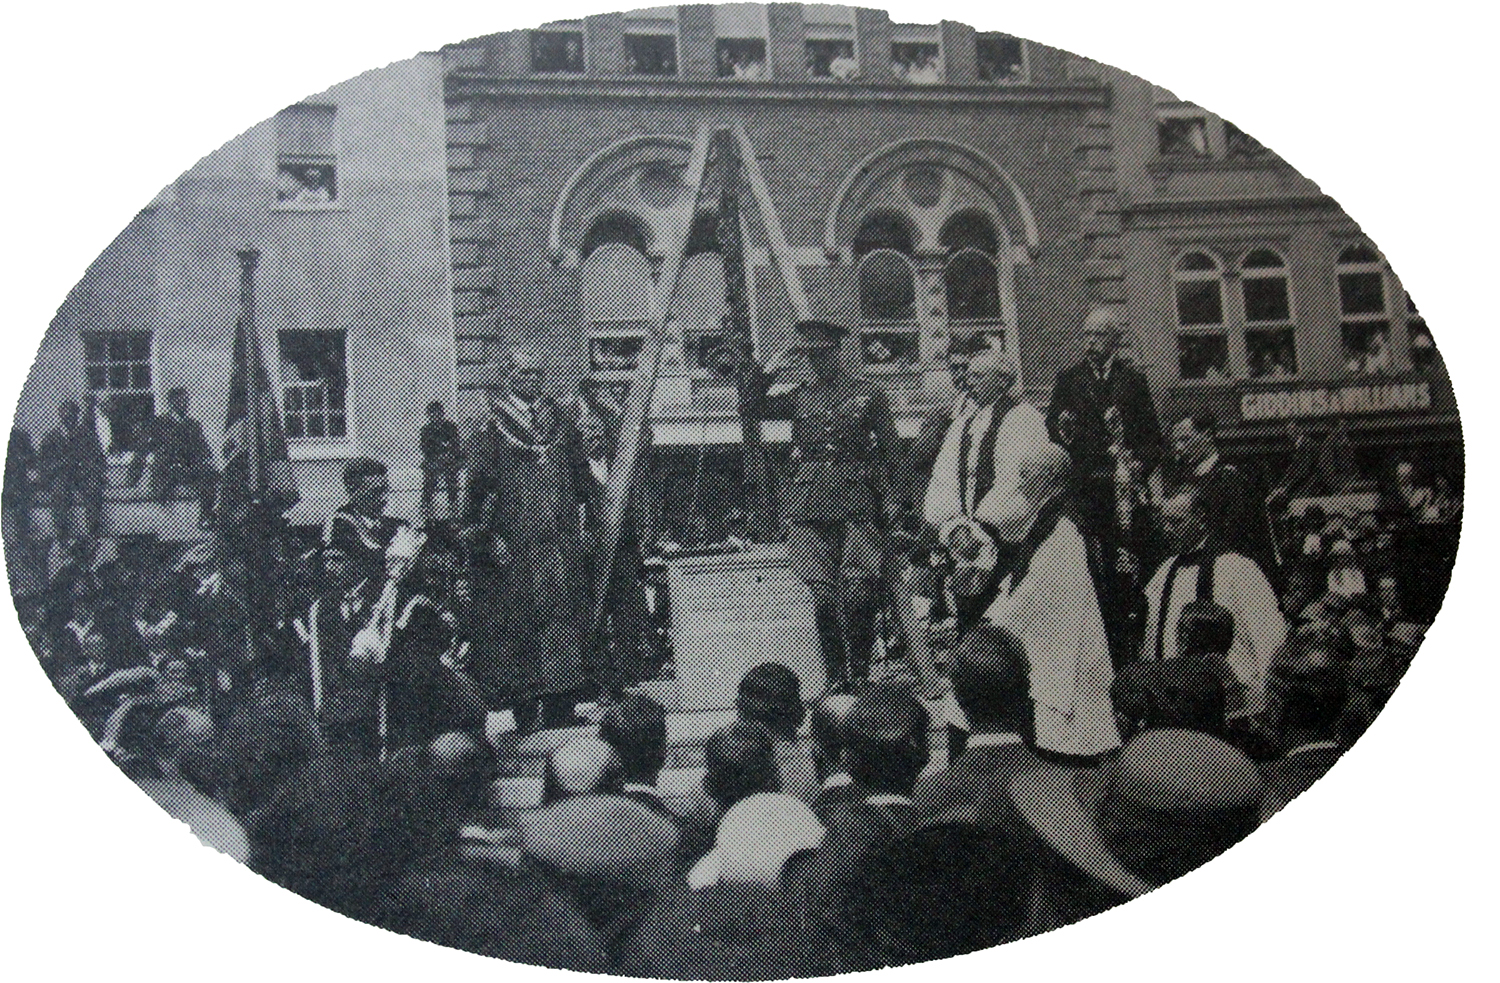 the-duke-of-cornwall-gives-the-salute-at-the-laying-of-the-war-memorial-foundation-stone-in-may-1921